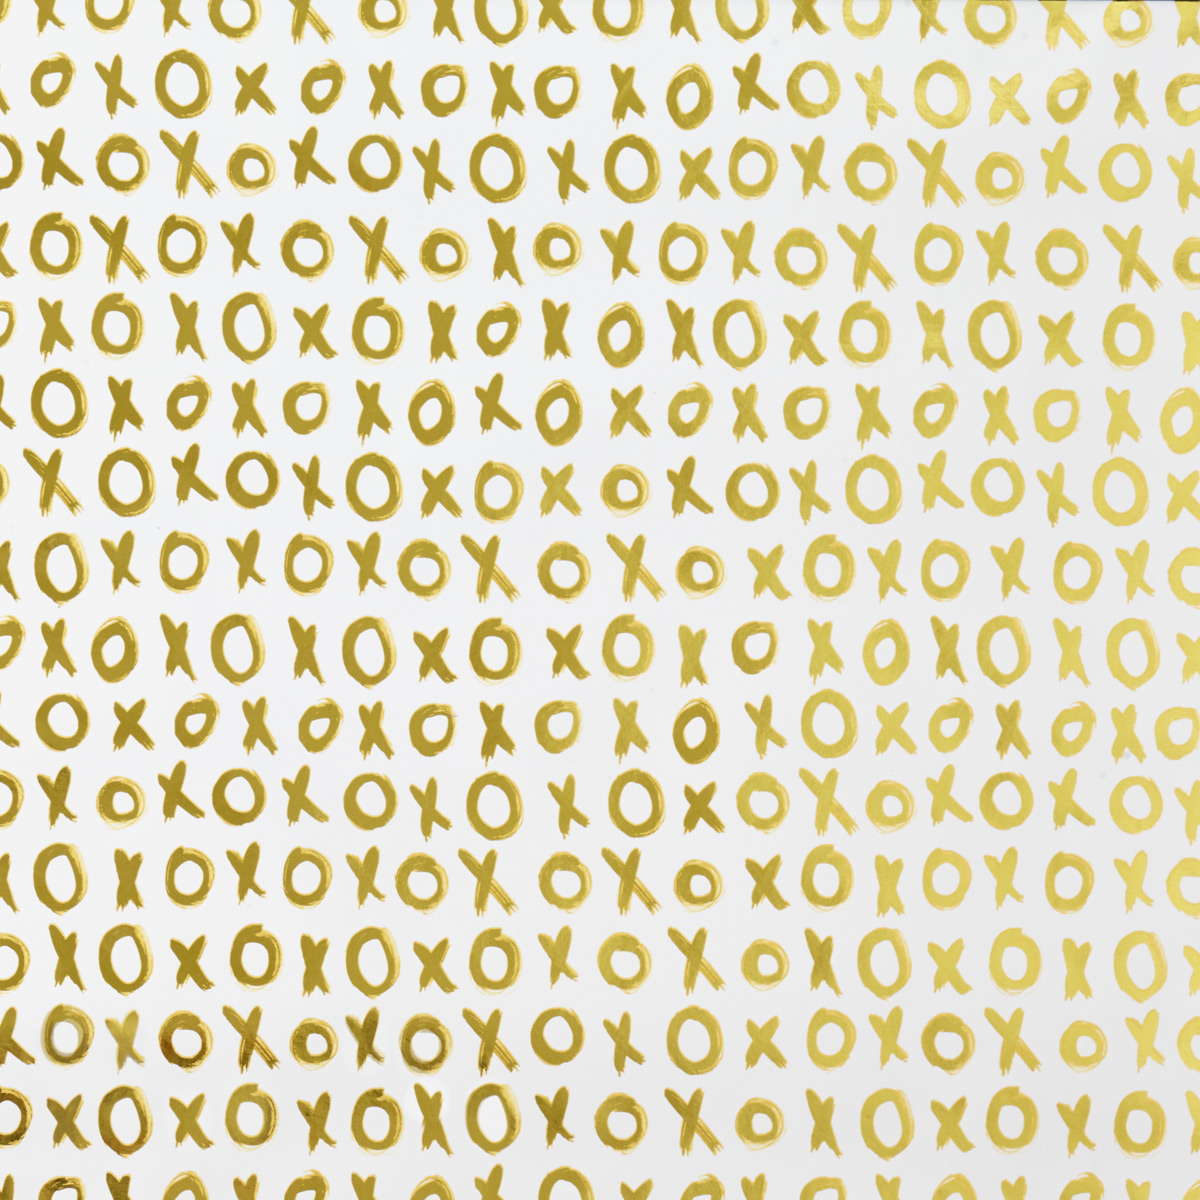 White & Gold XOXO Foil Wrapping Paper